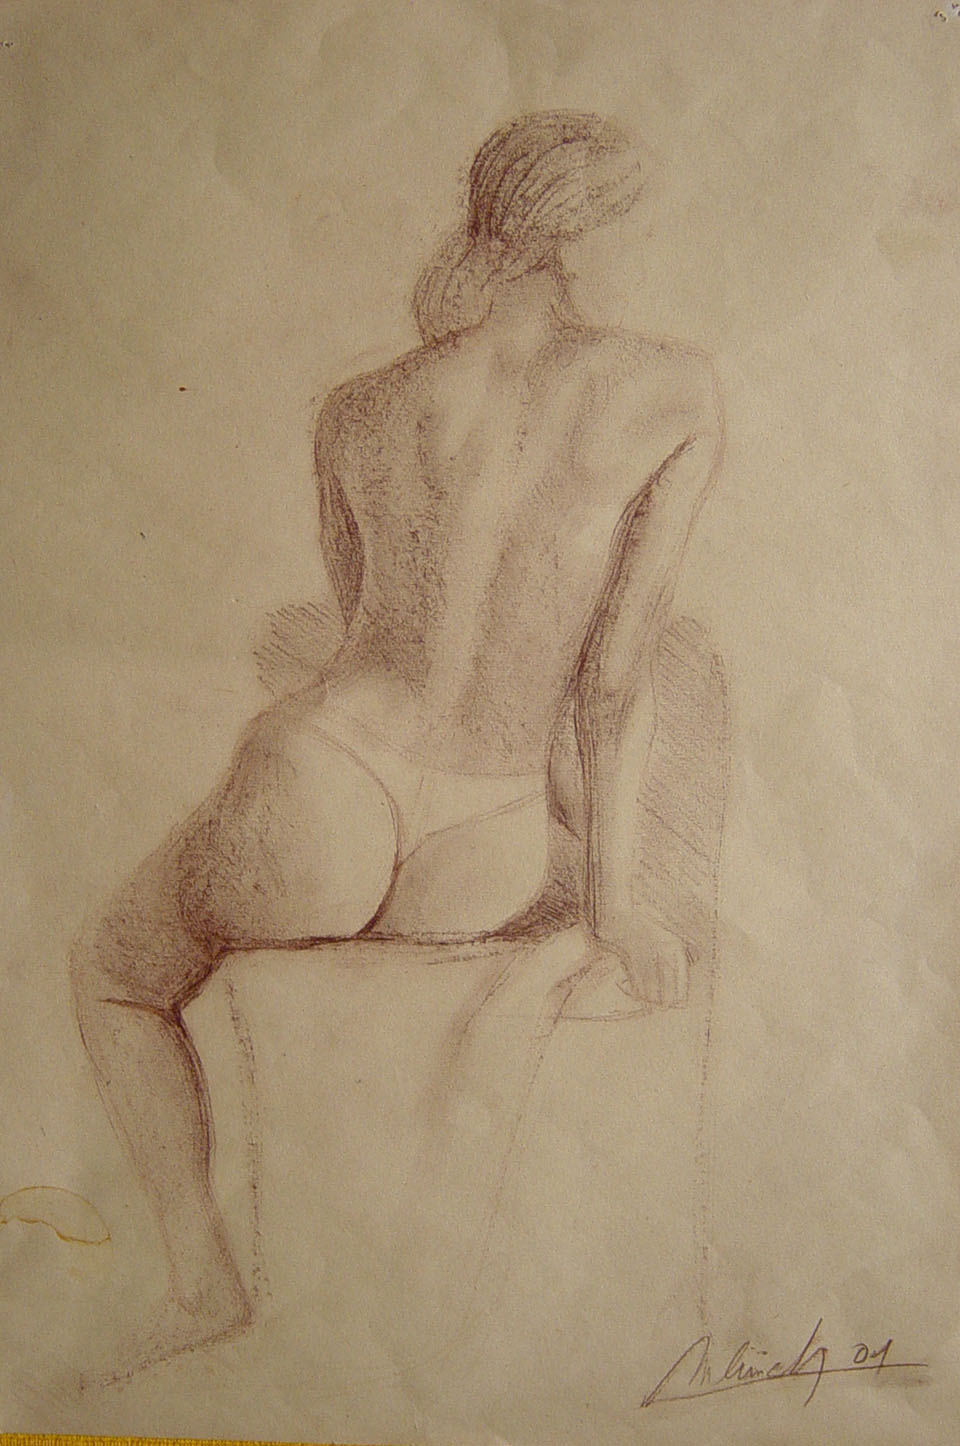 technique: charcoal dimensions: 297 x 210 cm year: 2001